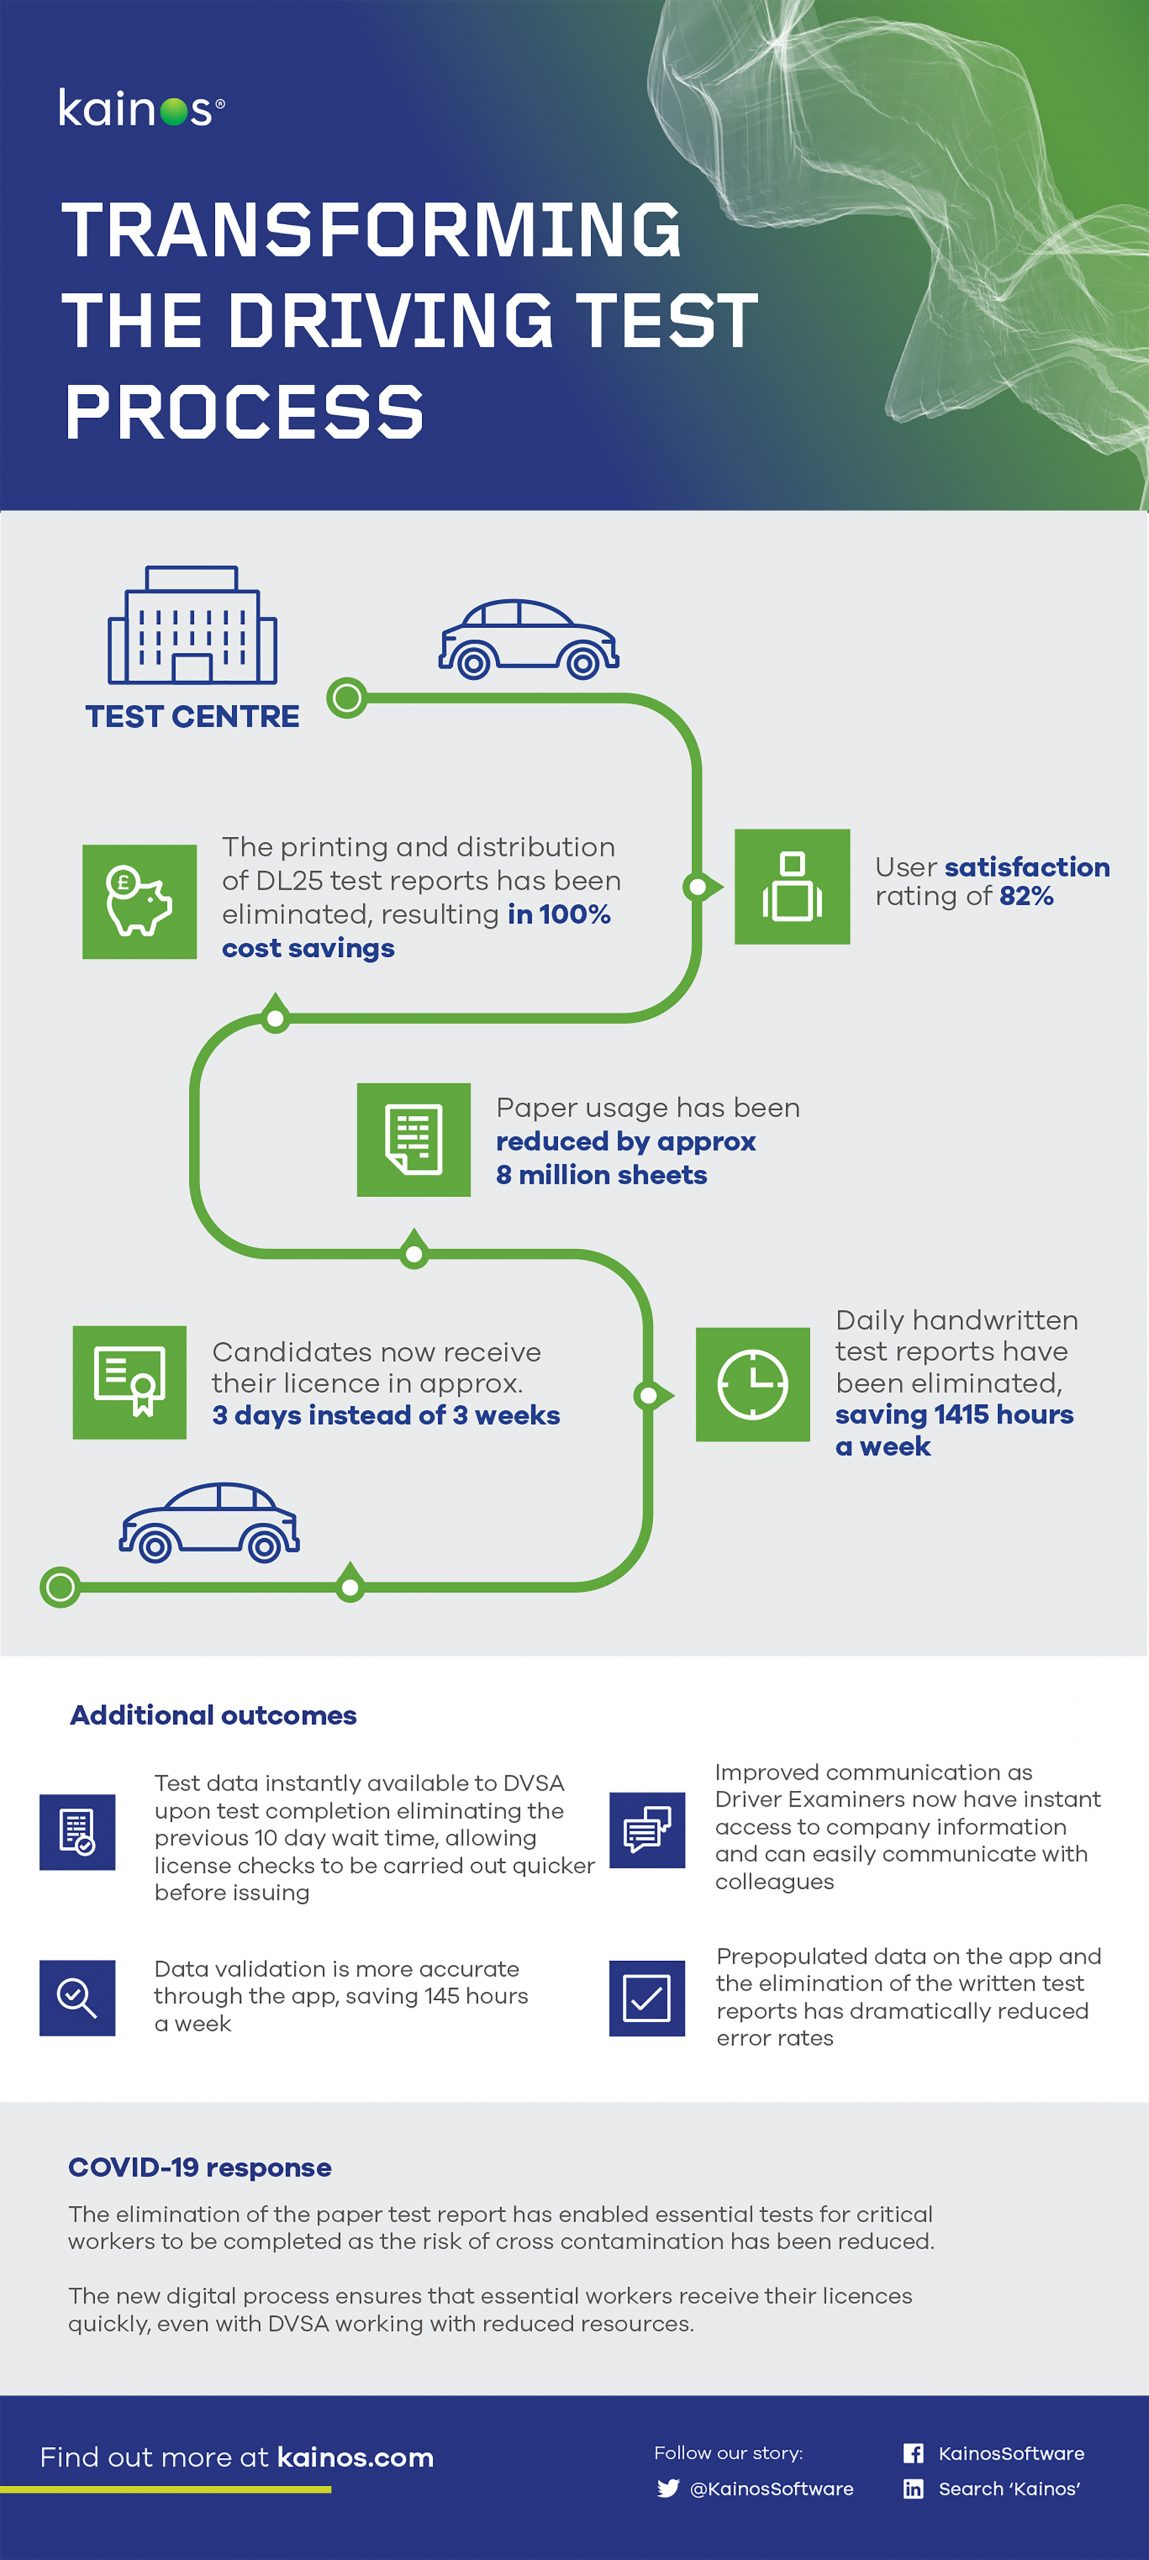 An info-graphic highlighting the cost saving and performance benefits achieved by transforming the driving test process for the DVSA